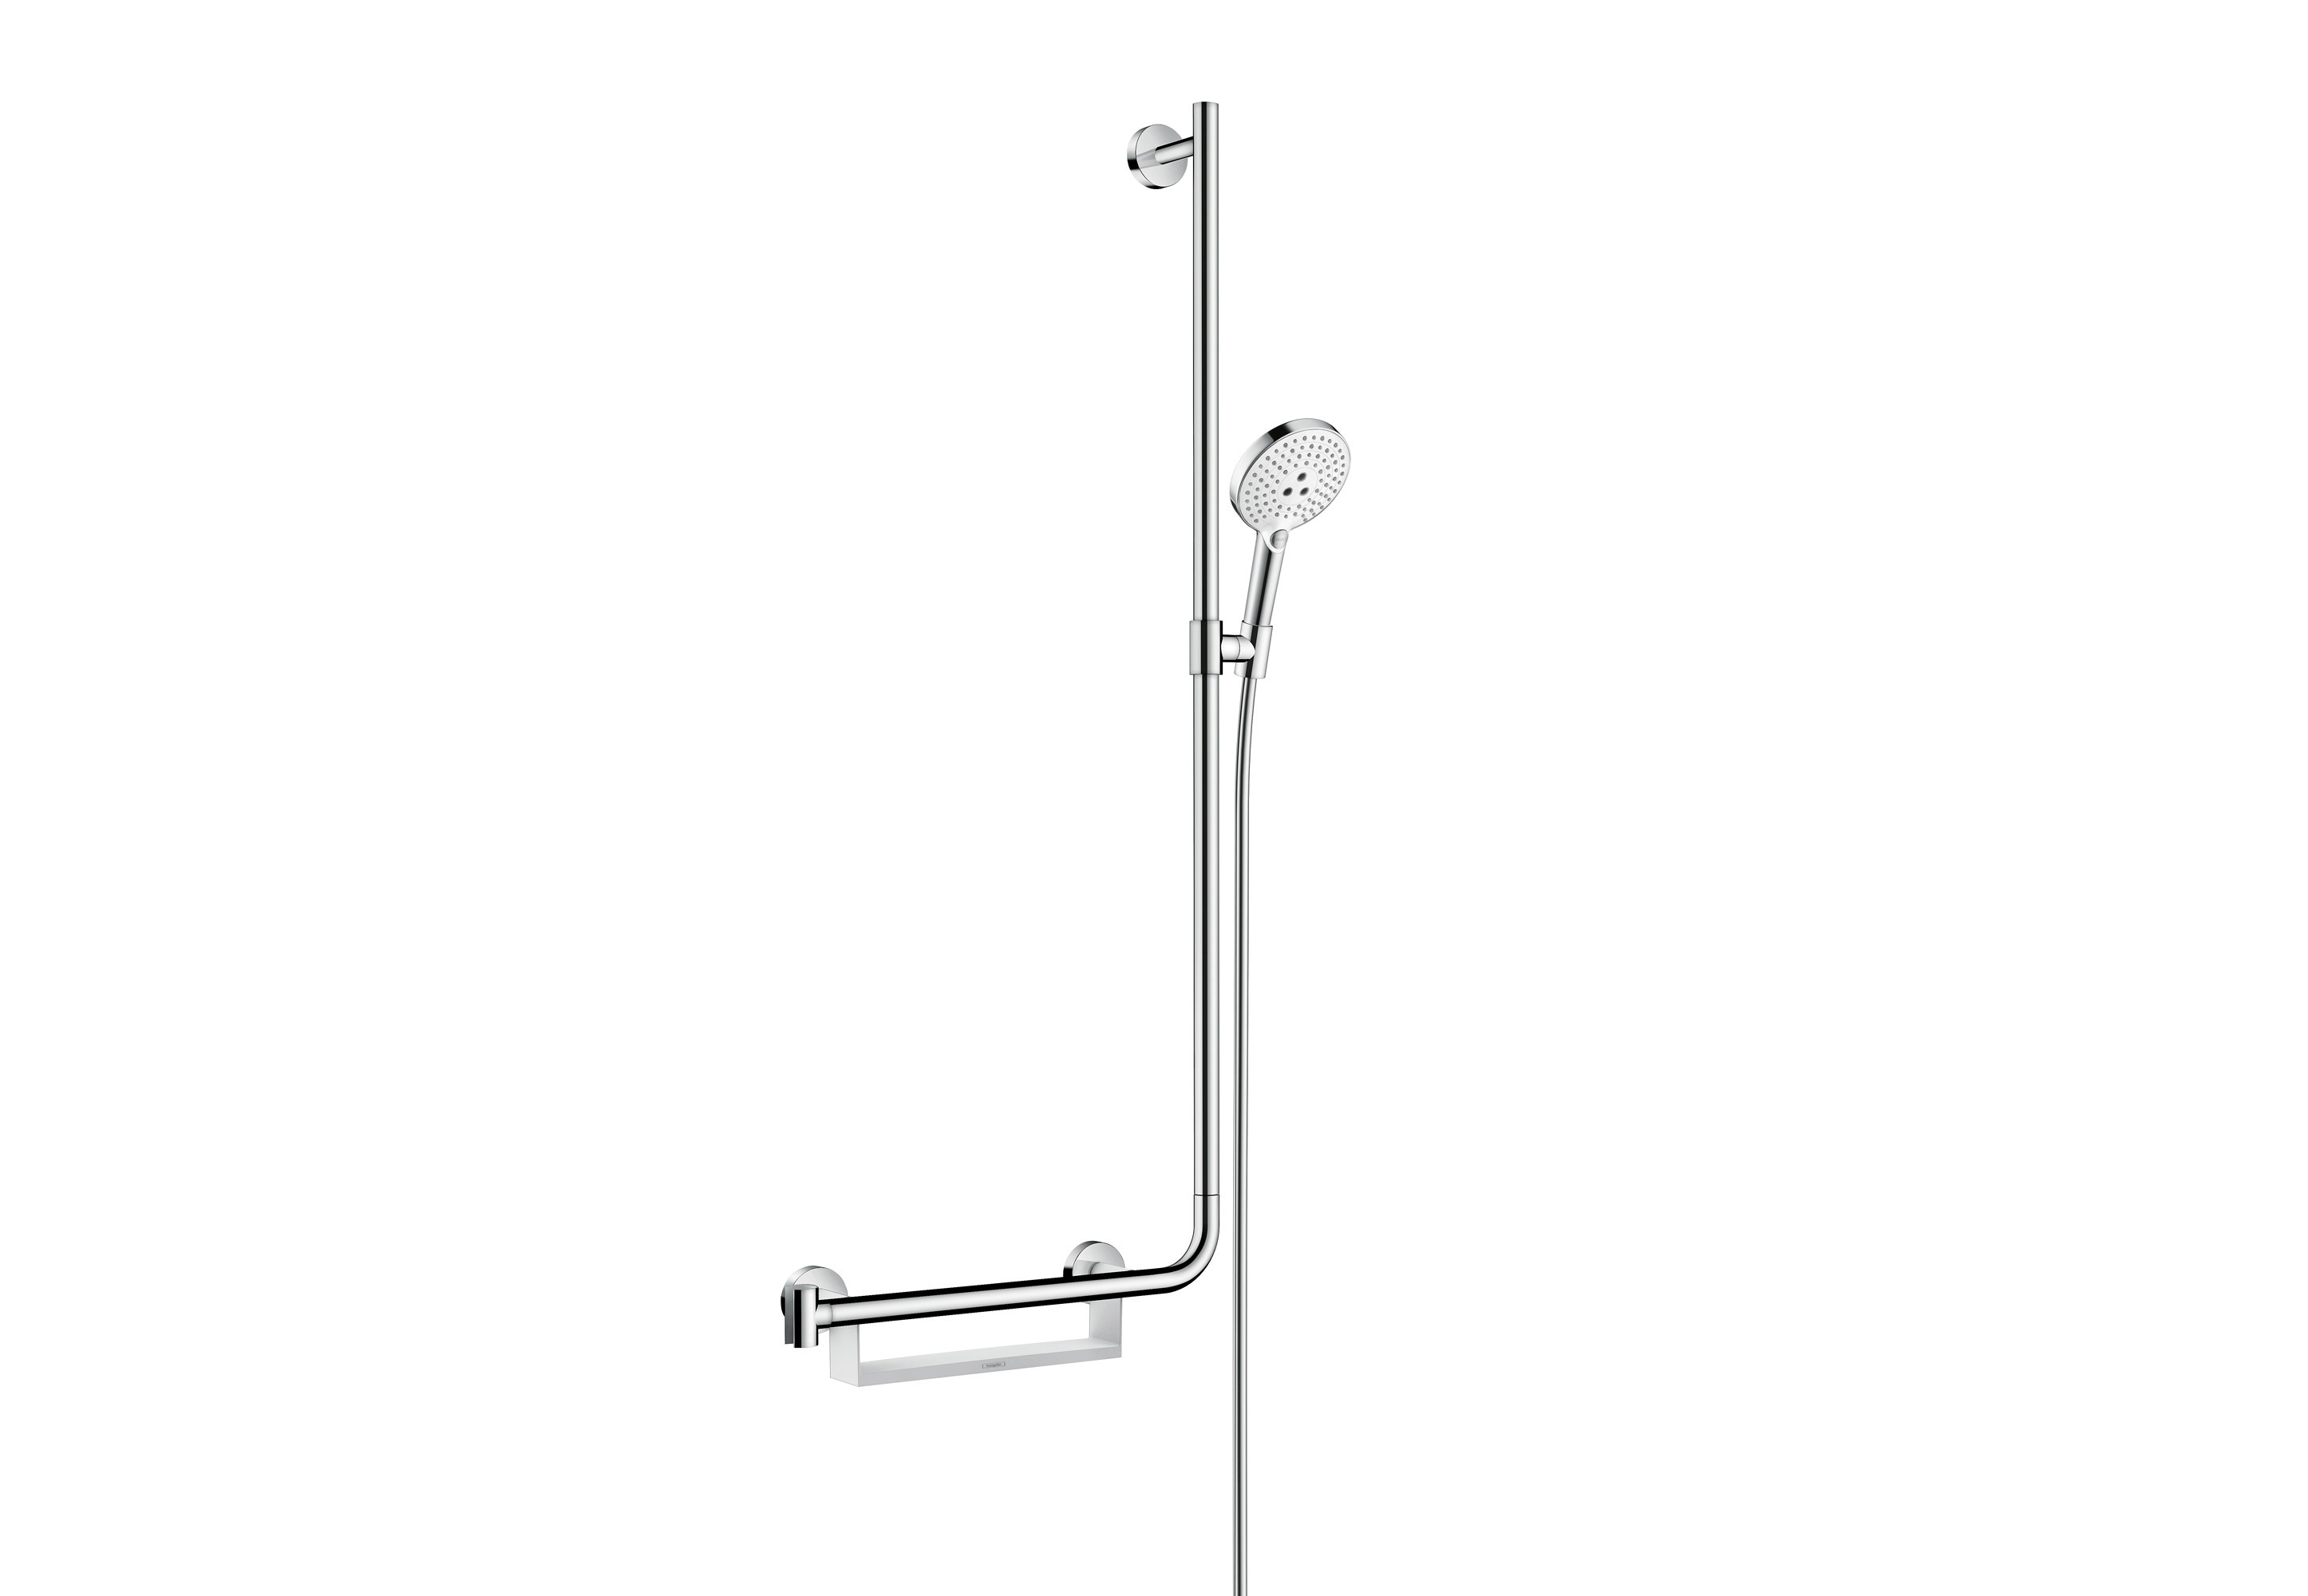 Hansgrohe Ag Unica Comfort Shower Bar Right By Hansgrohe Stylepark